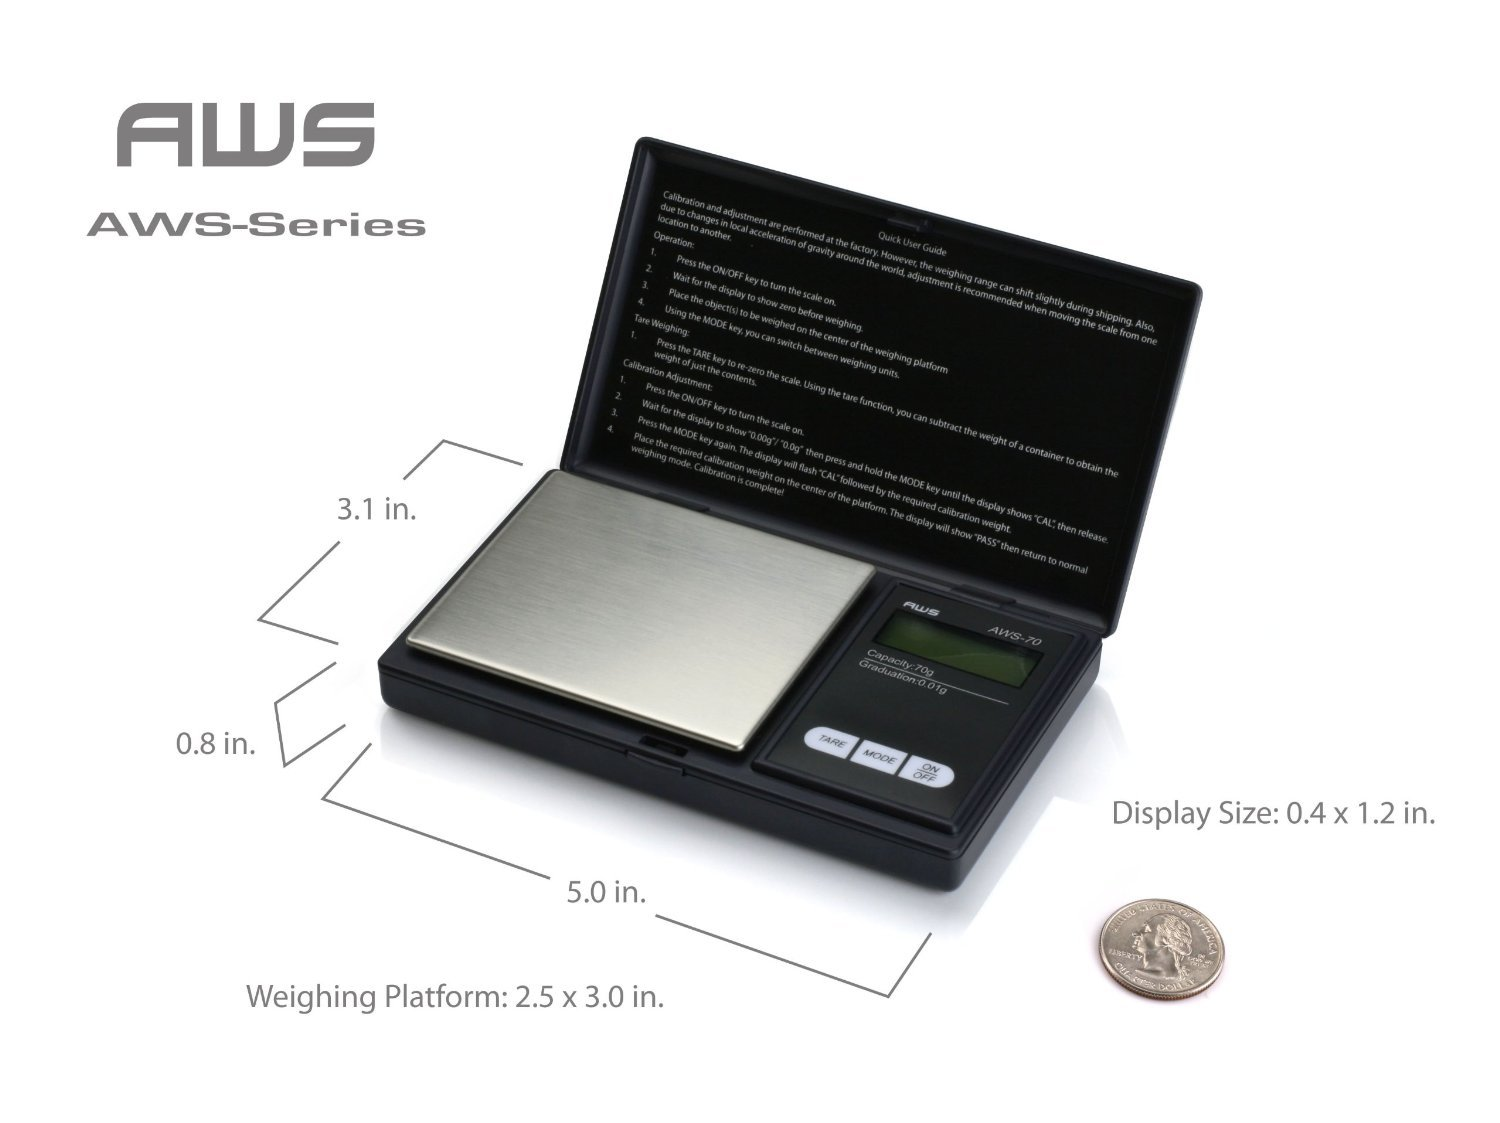 American Weigh 100G X 0.01G Digital Scale With Seaside 100 G Stainless Steel Calibration Weight by Seaside American Weigh